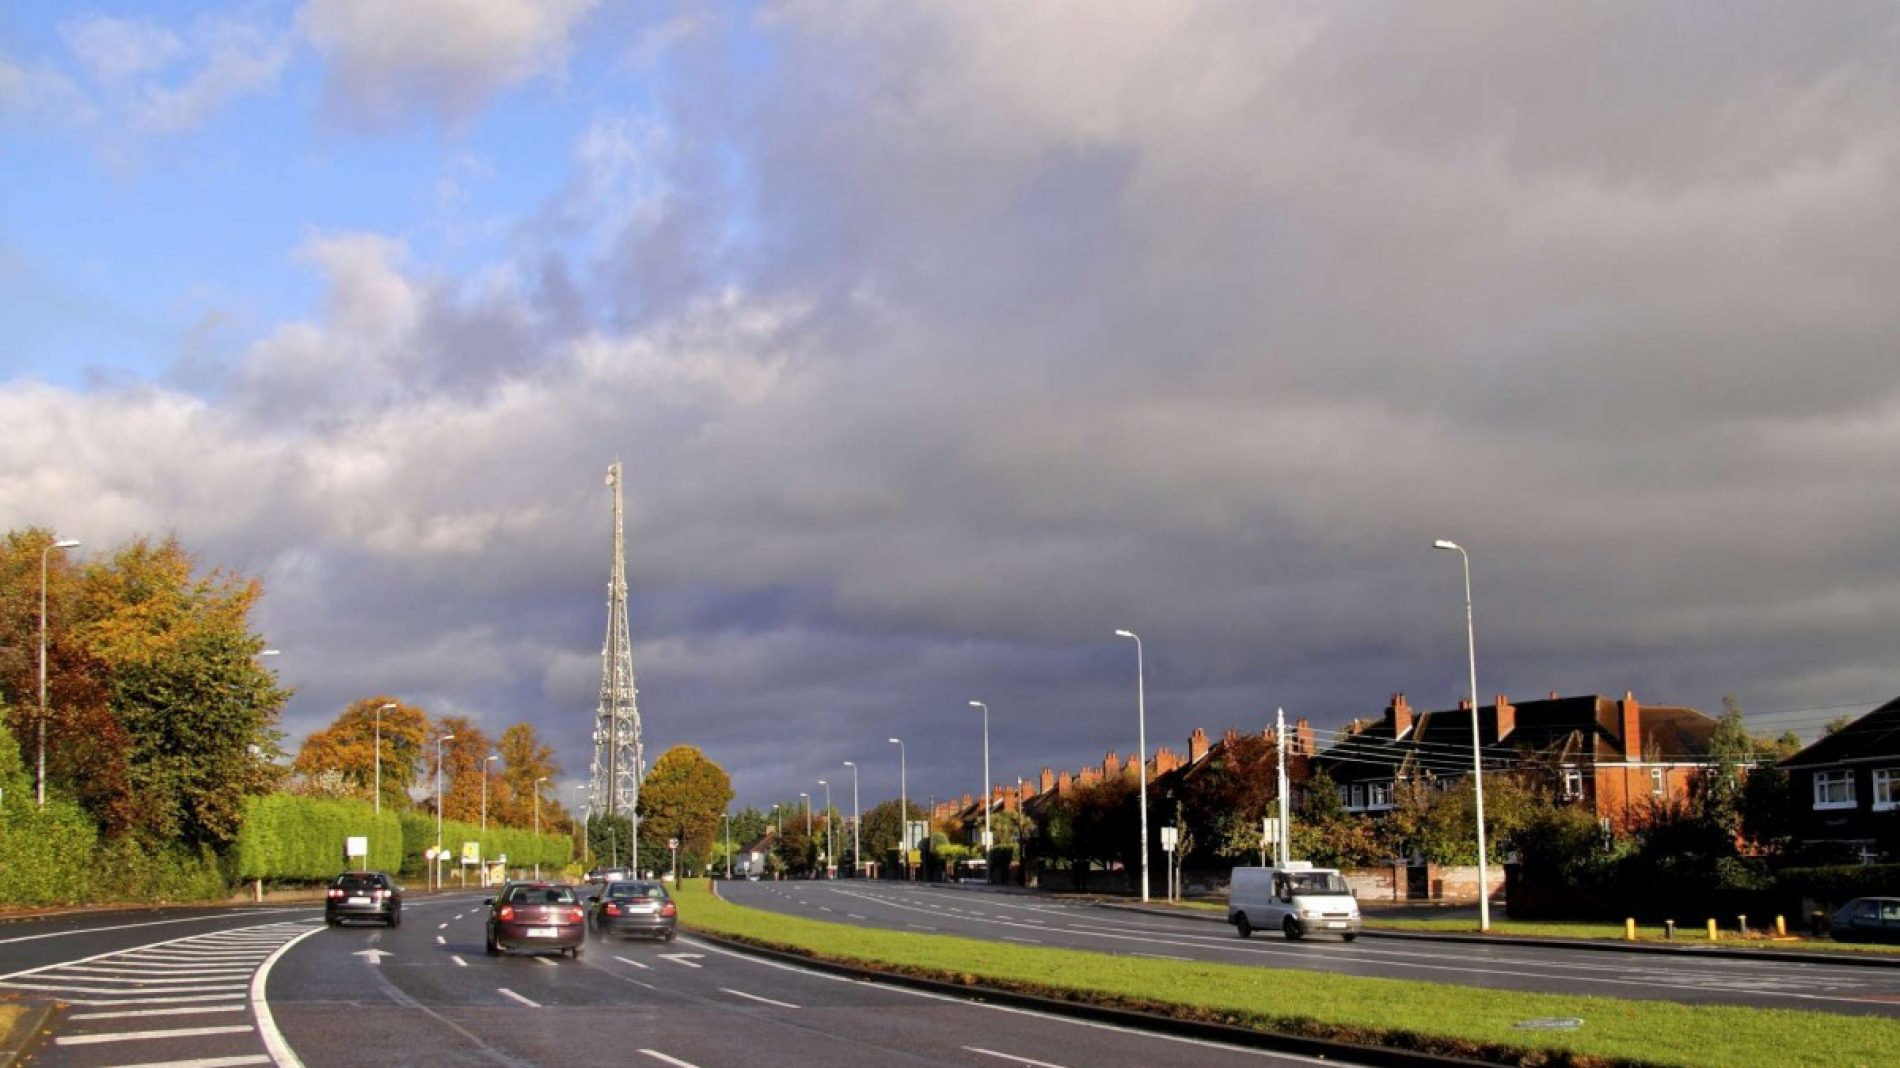 View of the RTE tower from the Stillorgan Road